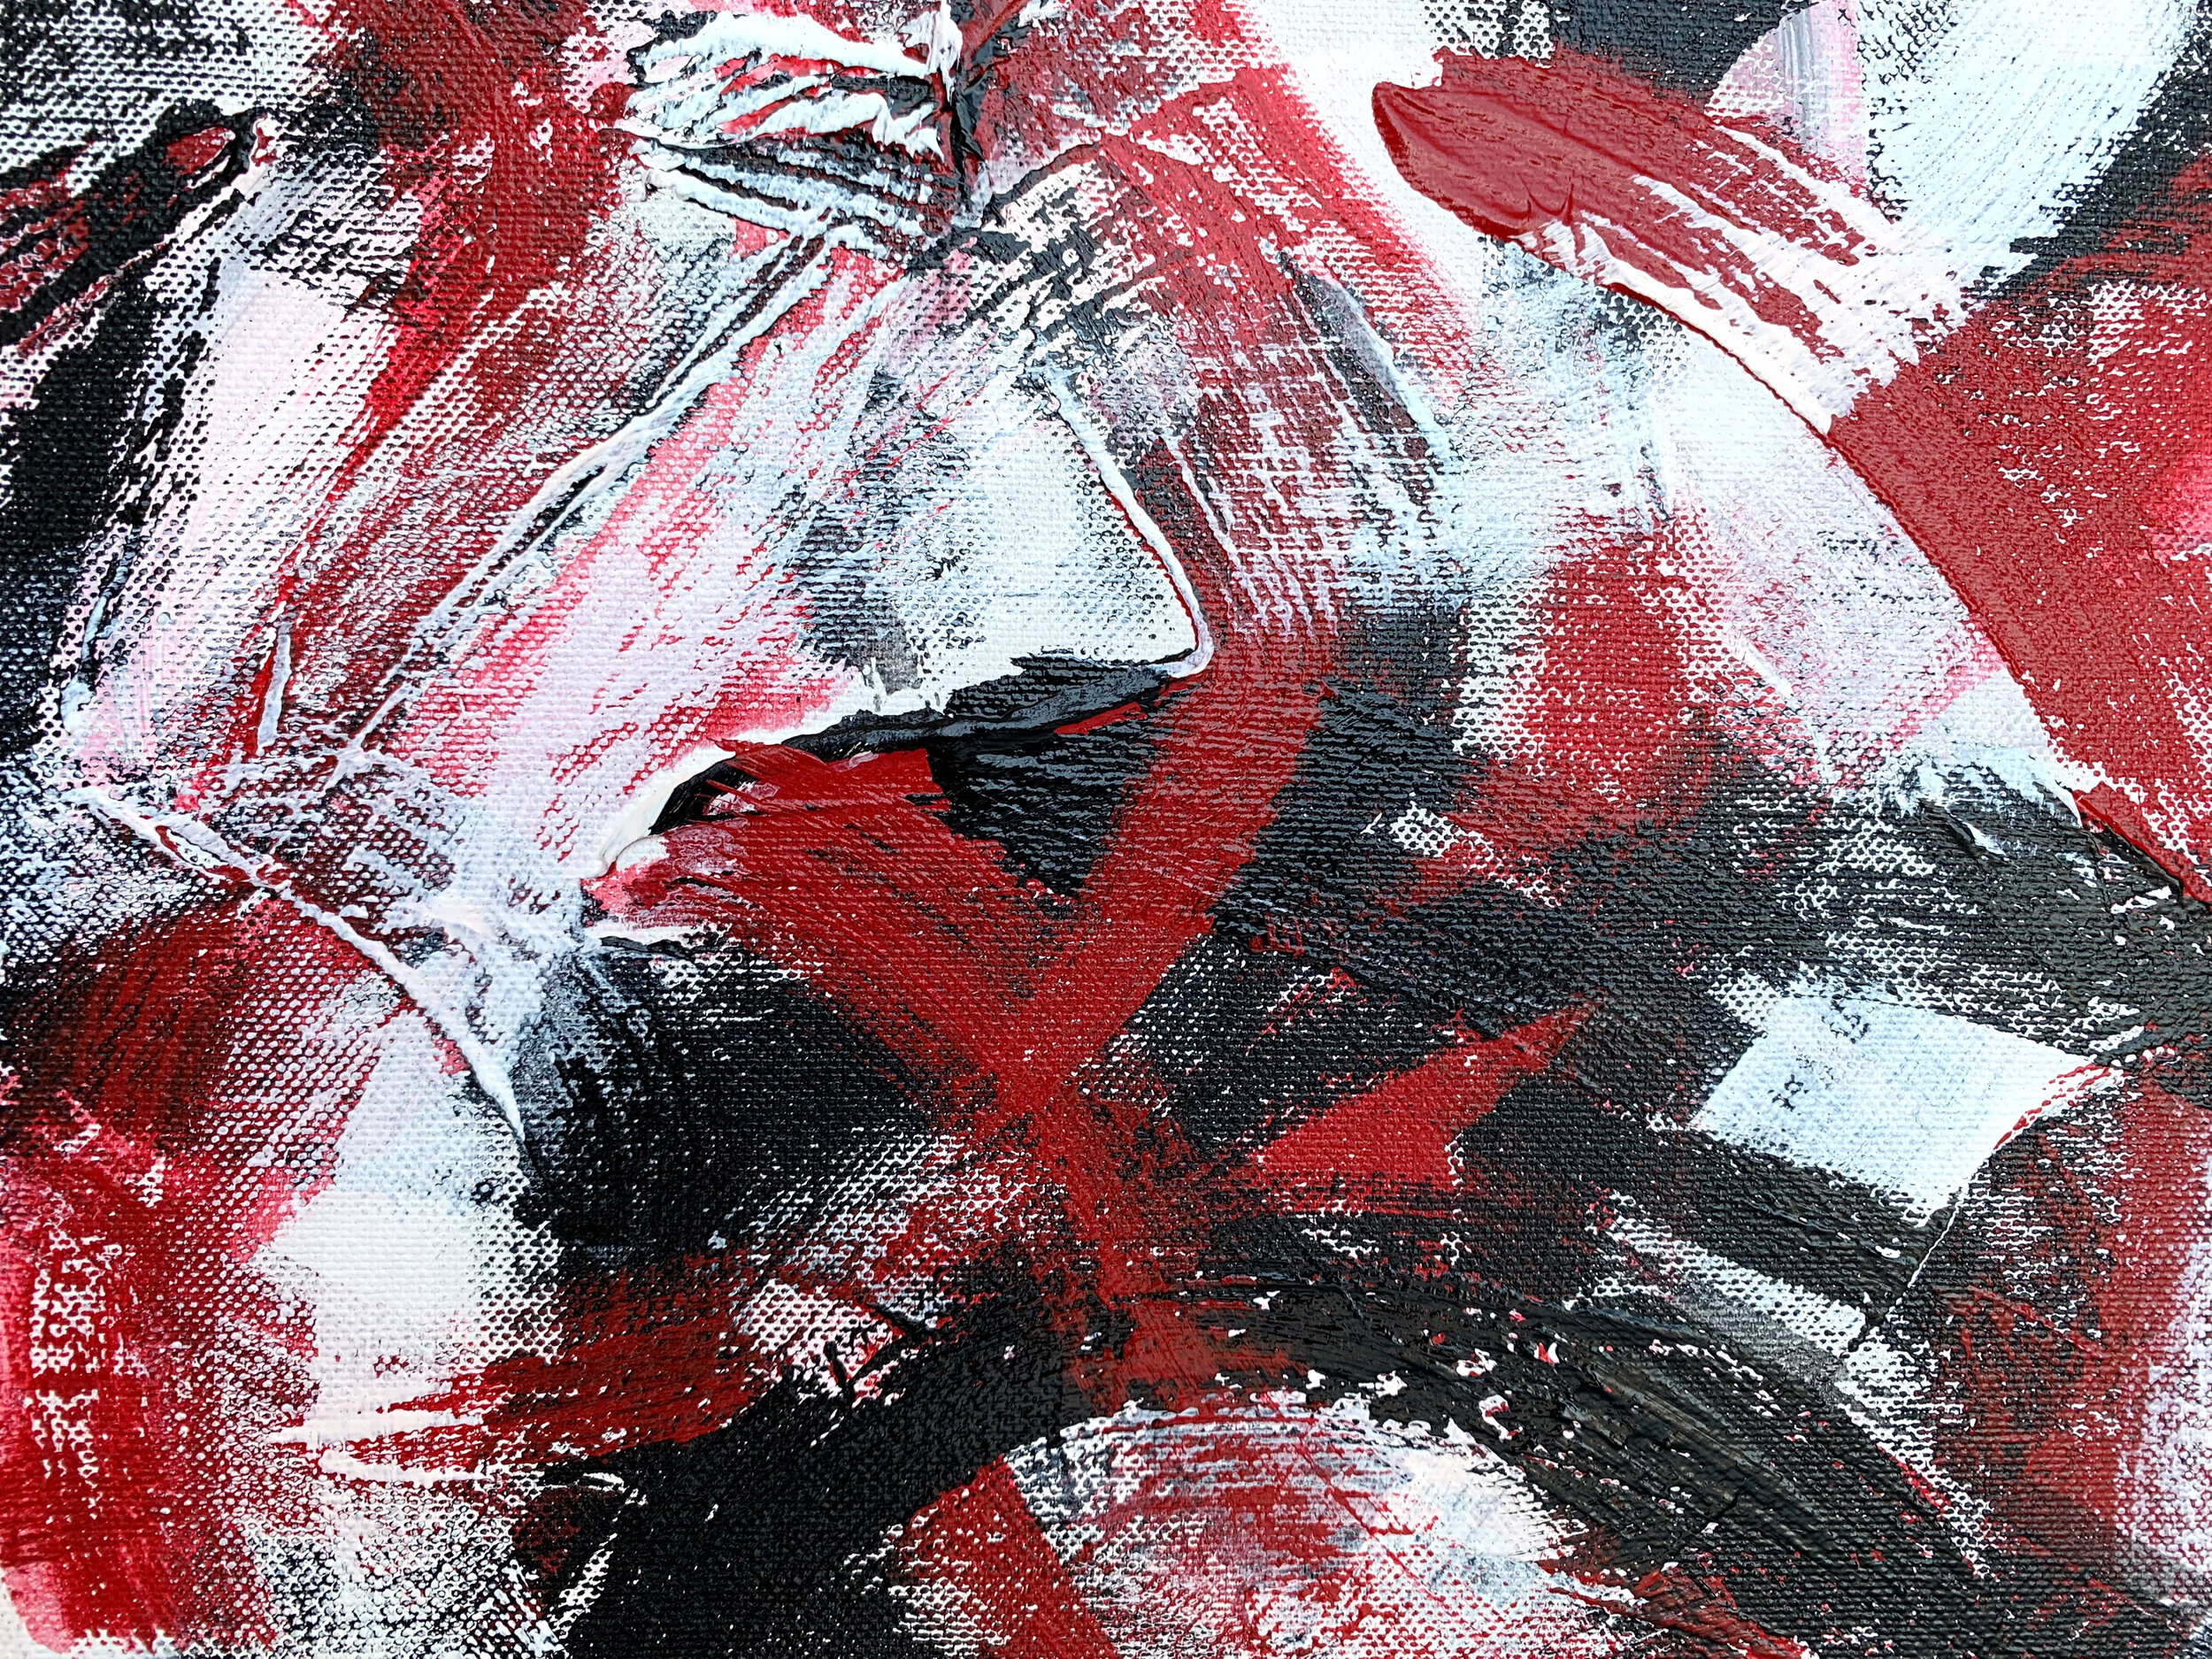 abstract-expressionism-painting-shengming-de-xiansuo-detail-2.jpg